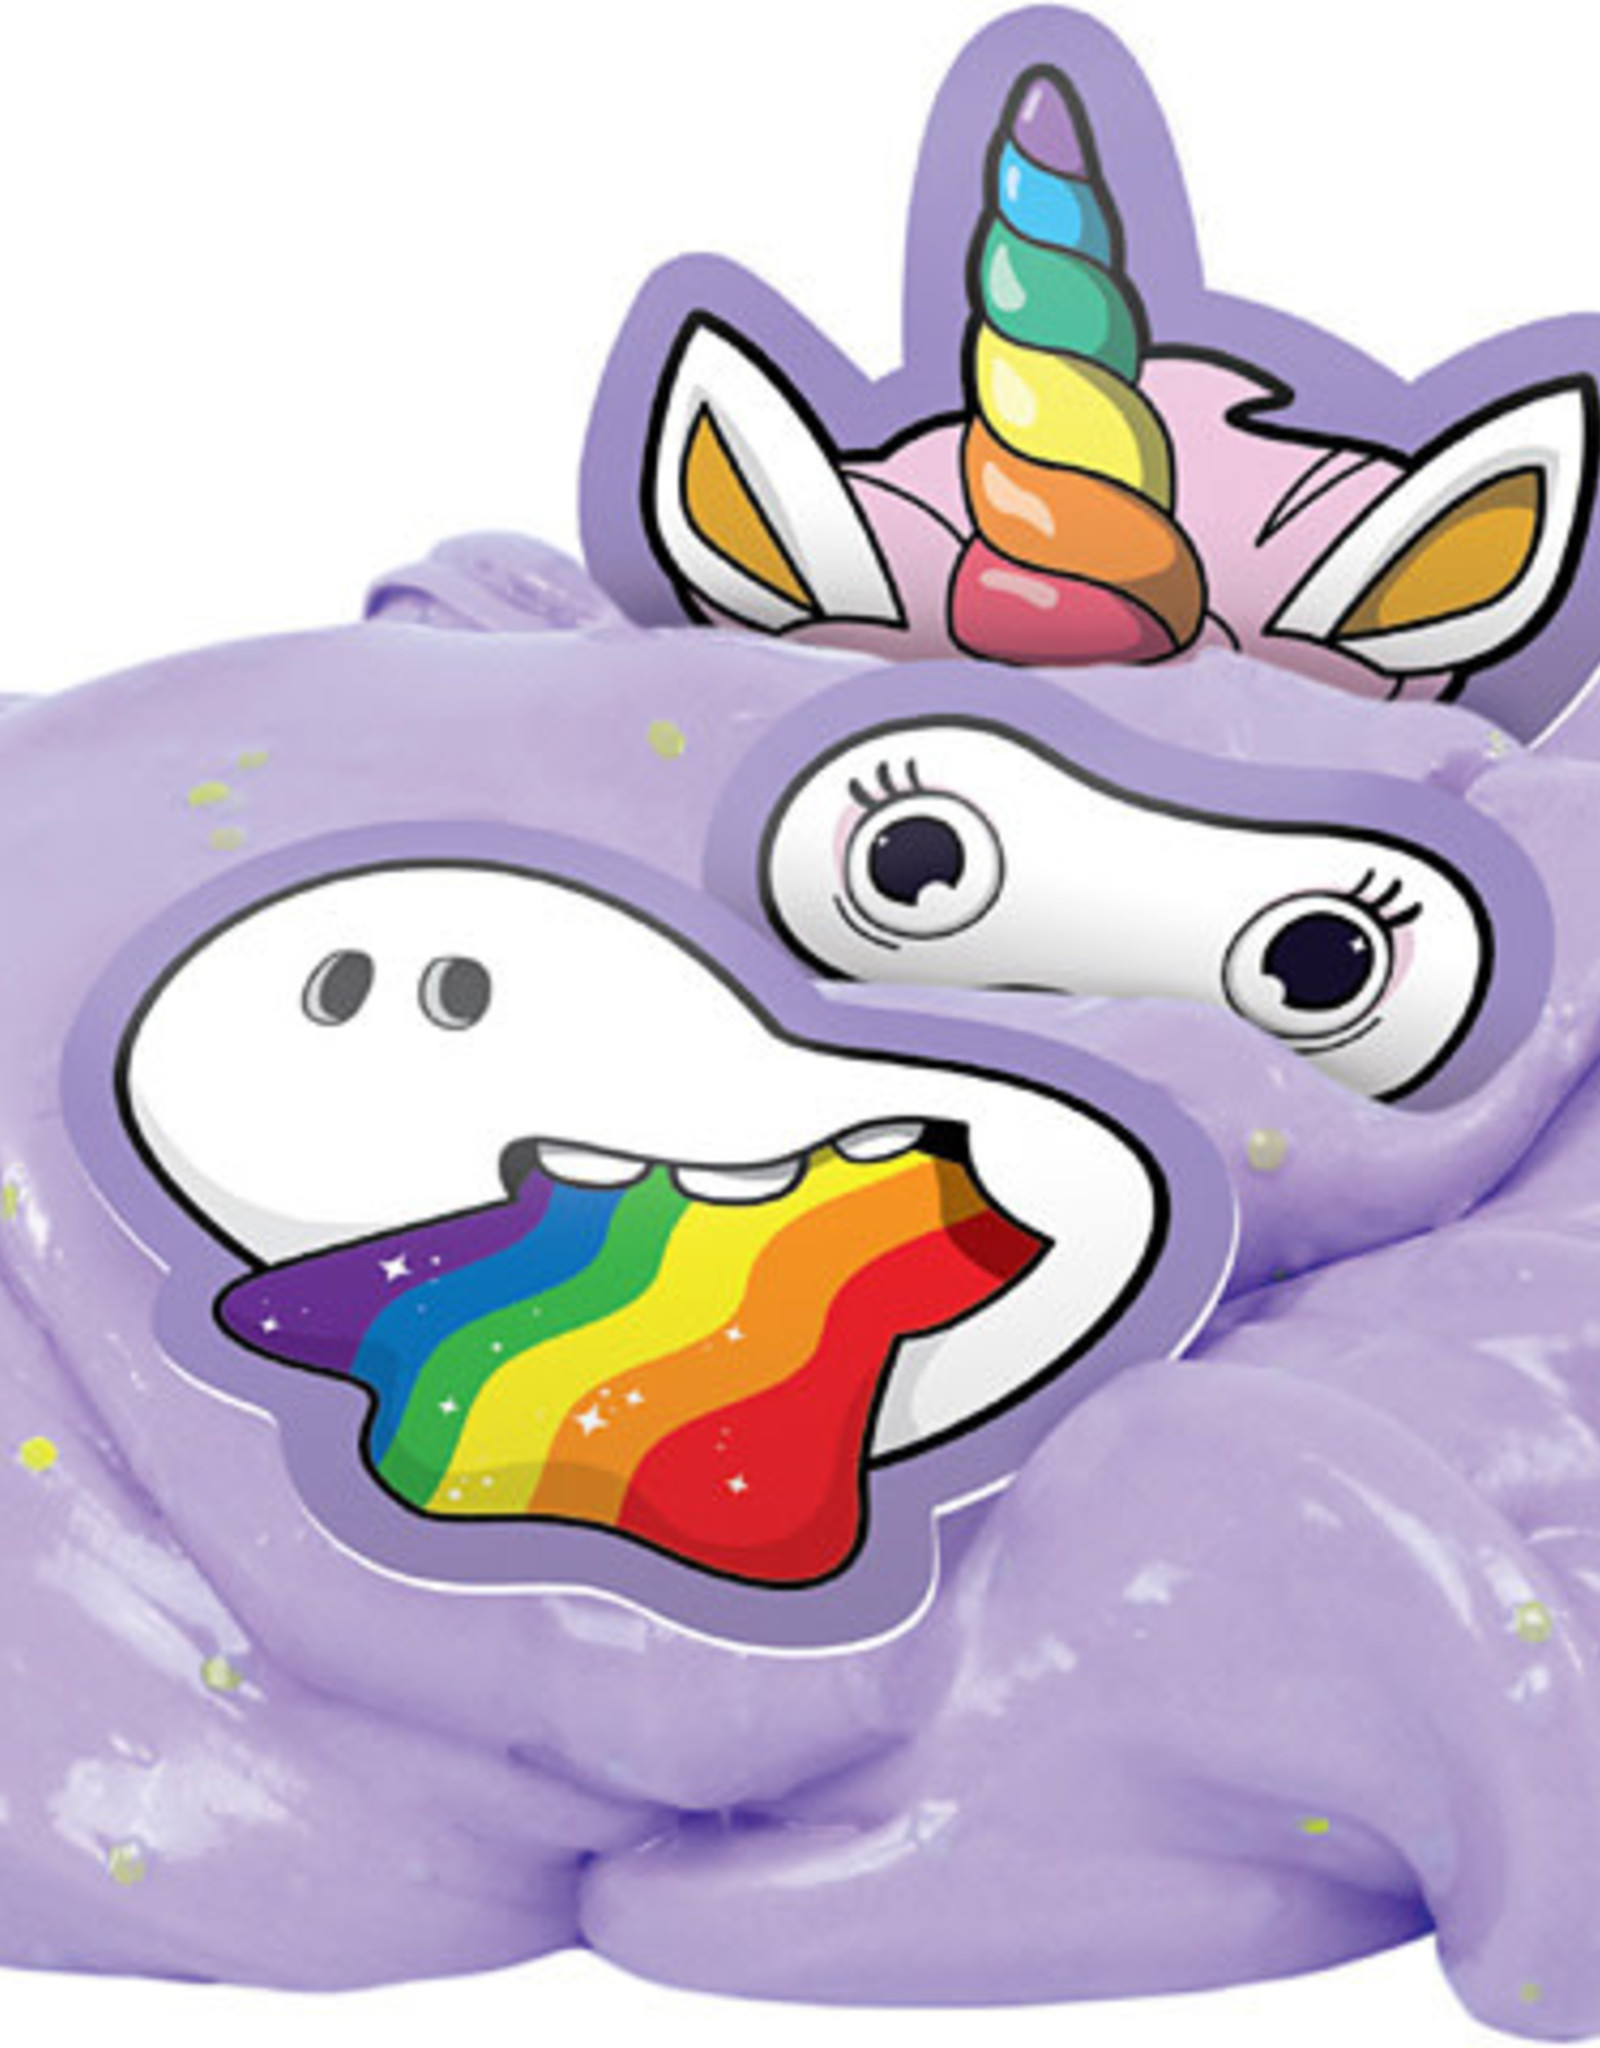 Magical Mix-Up Creatures Class - Tuesday August 17 - Hammonton